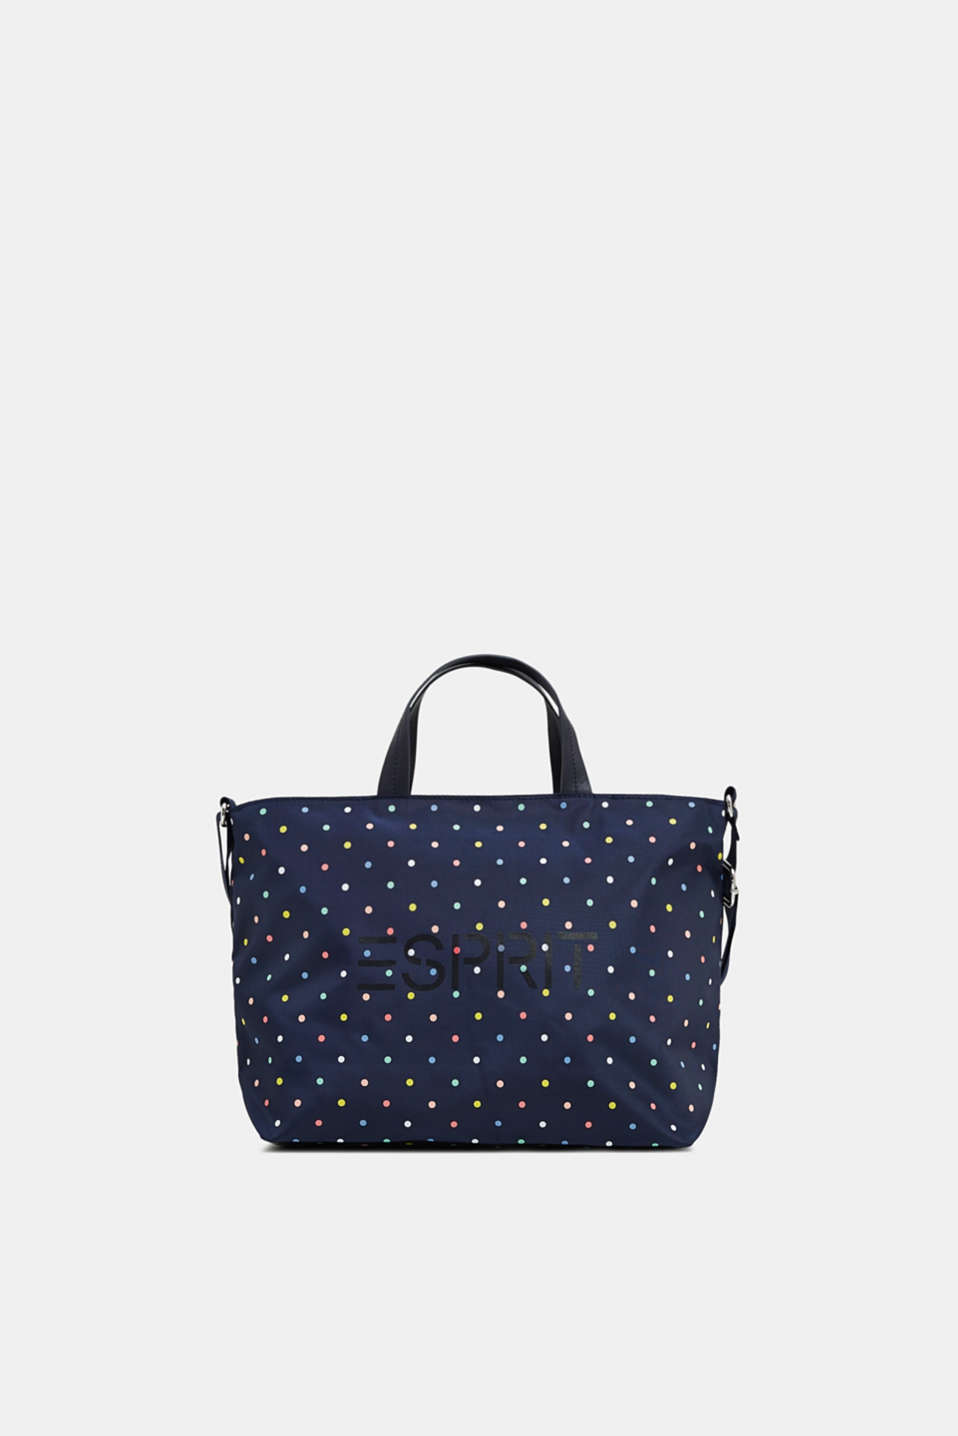 Esprit - City bag with a colourful print, in nylon